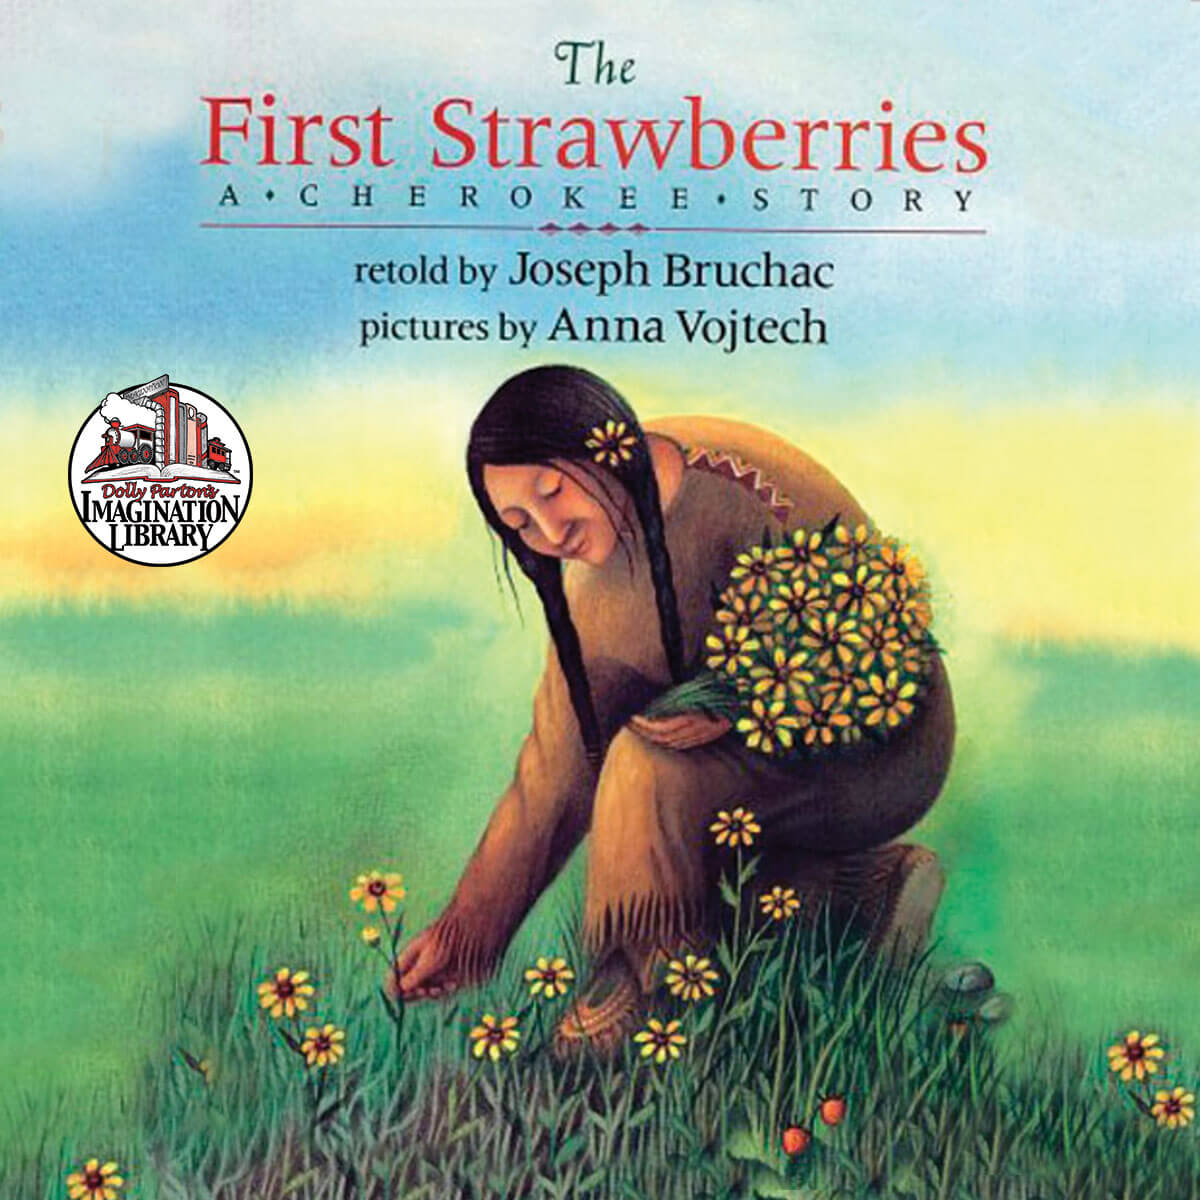 The First Strawberries - Dolly Parton's Imagination Library